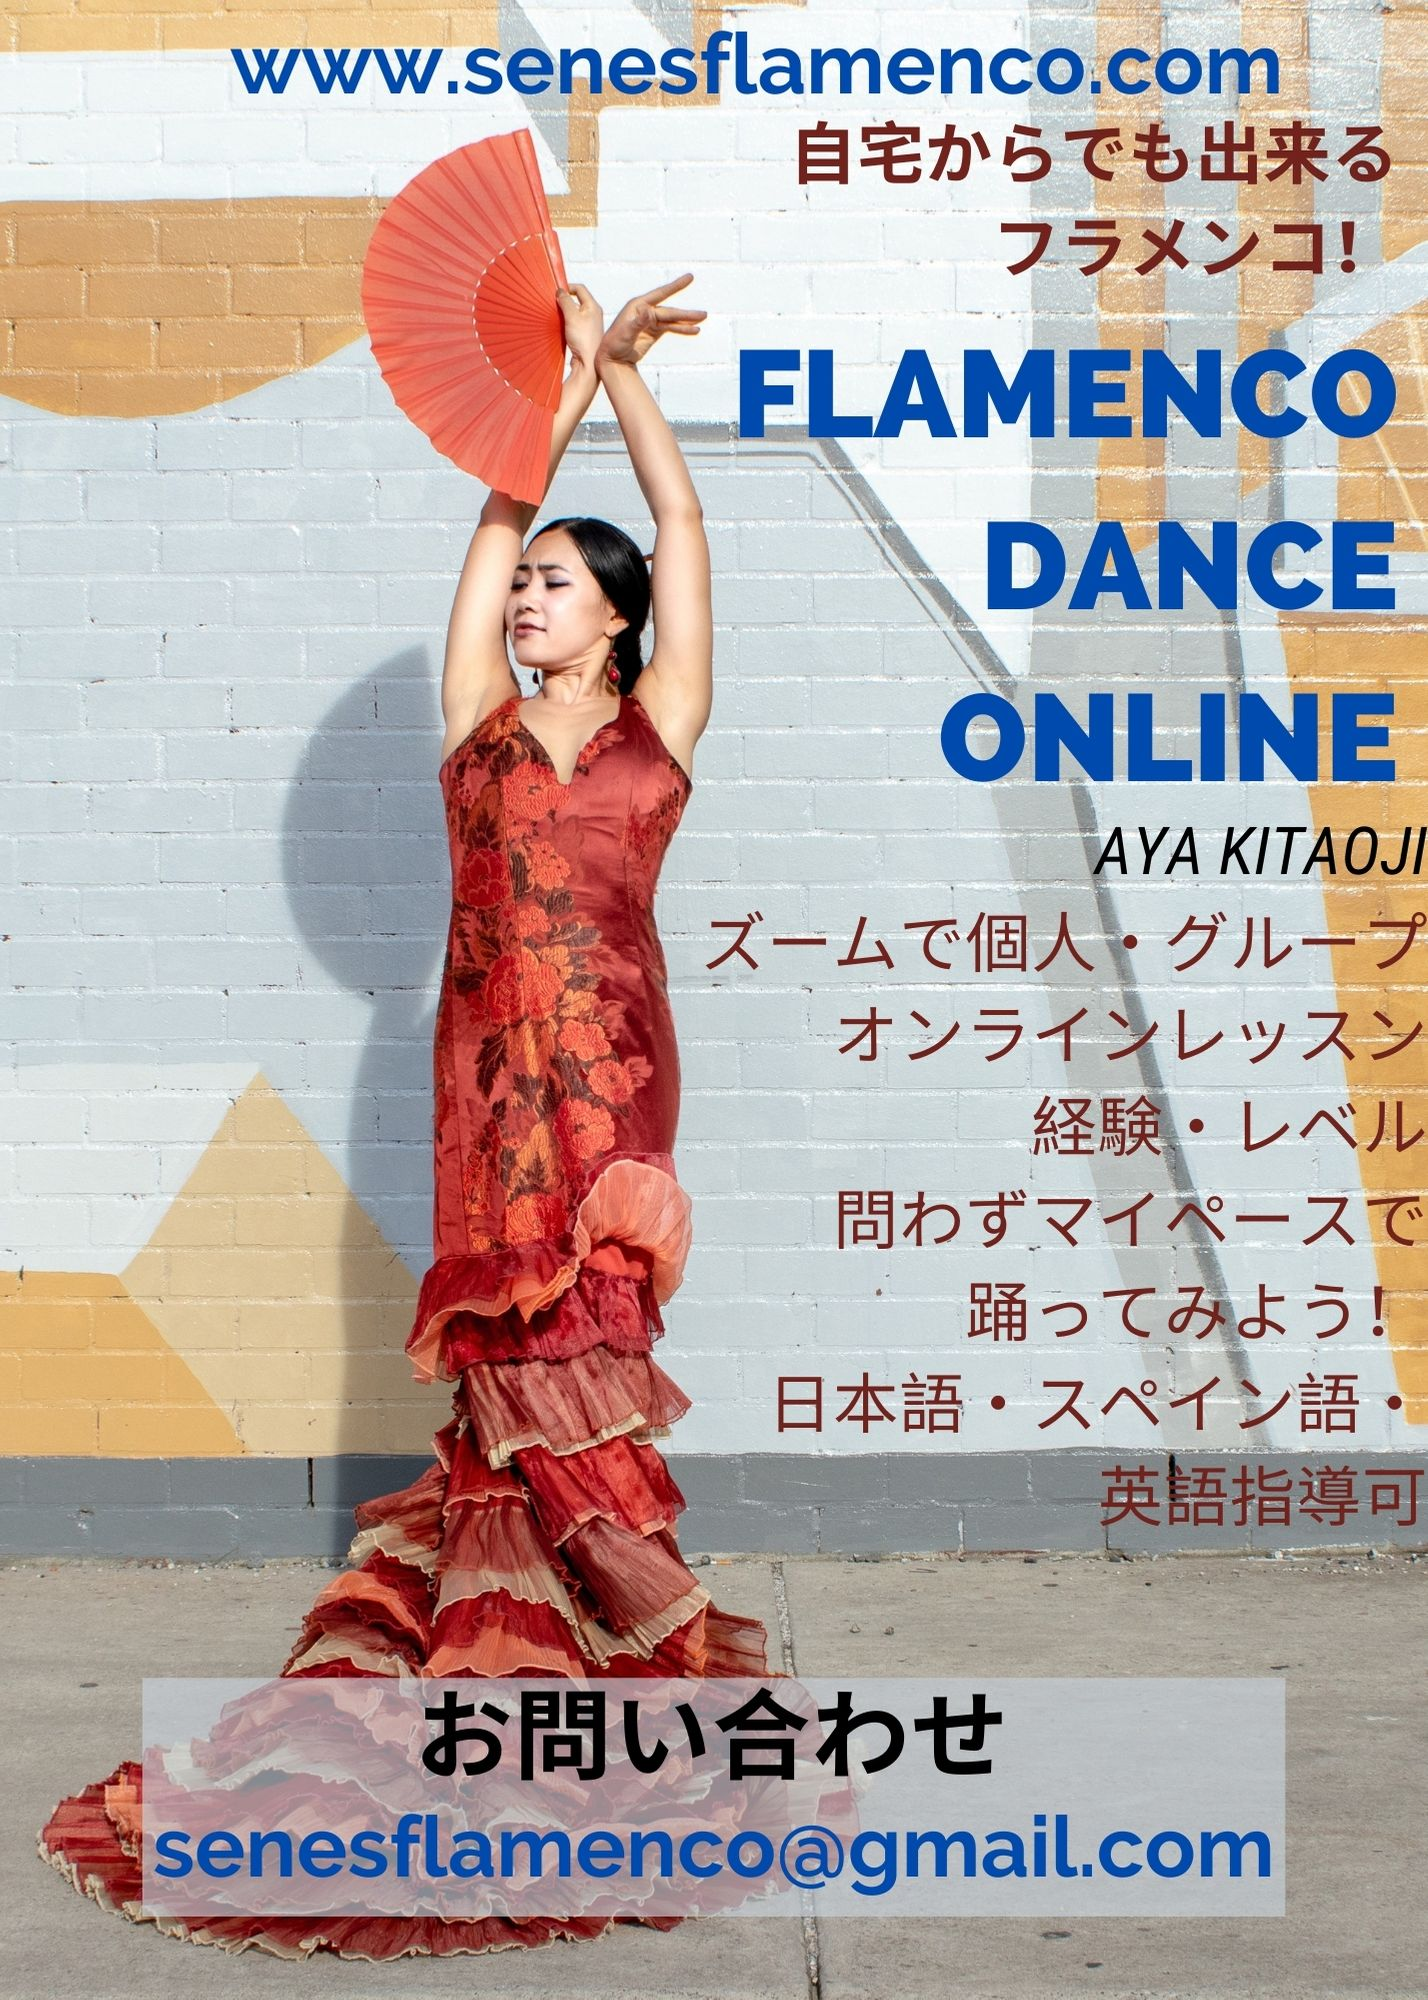 Japanese flamenco ad